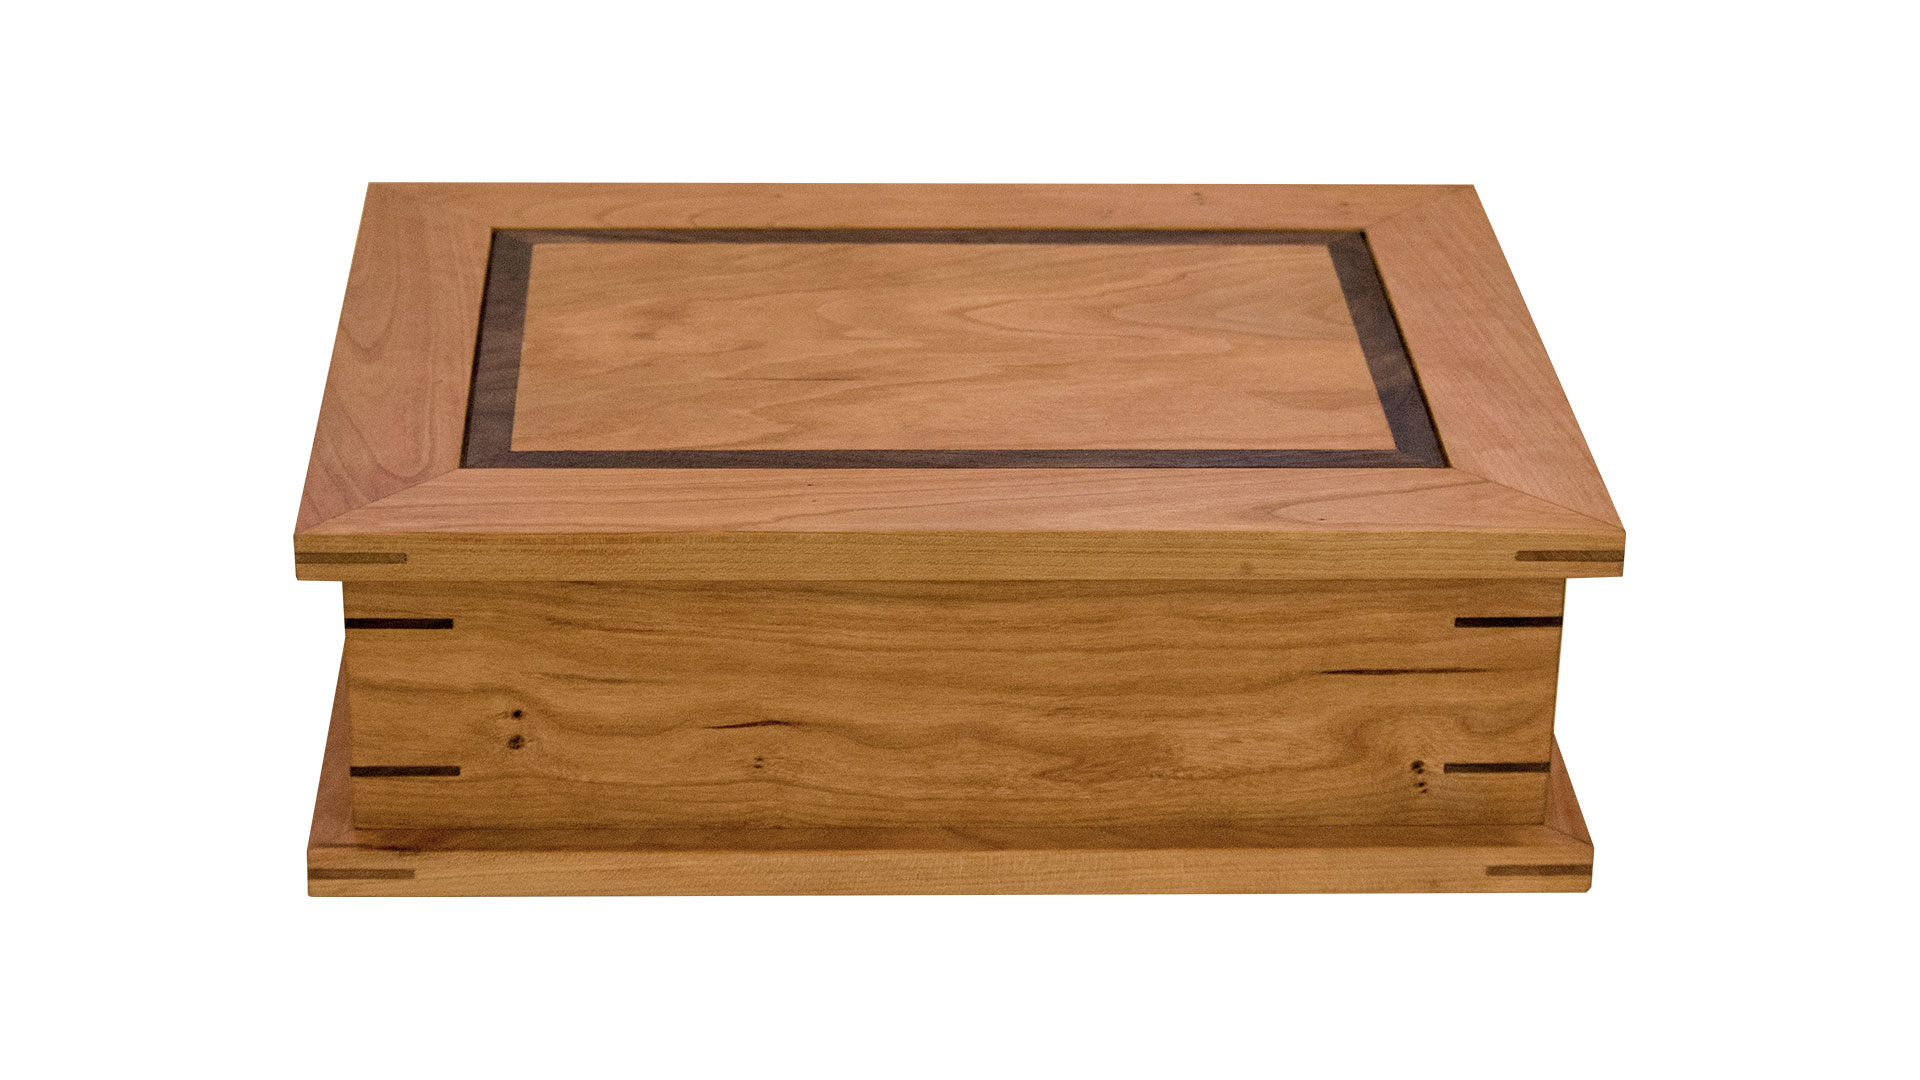 keepsake box - Sized to accommodate 8 1/2 x11 sheets of paper. Includes either a half-size or a full-size removable tray. Overall dimensions can be resized.As shown: Cherry and WalnutDimensions: 15W x 12D x 4 1/2HPrice: from $319